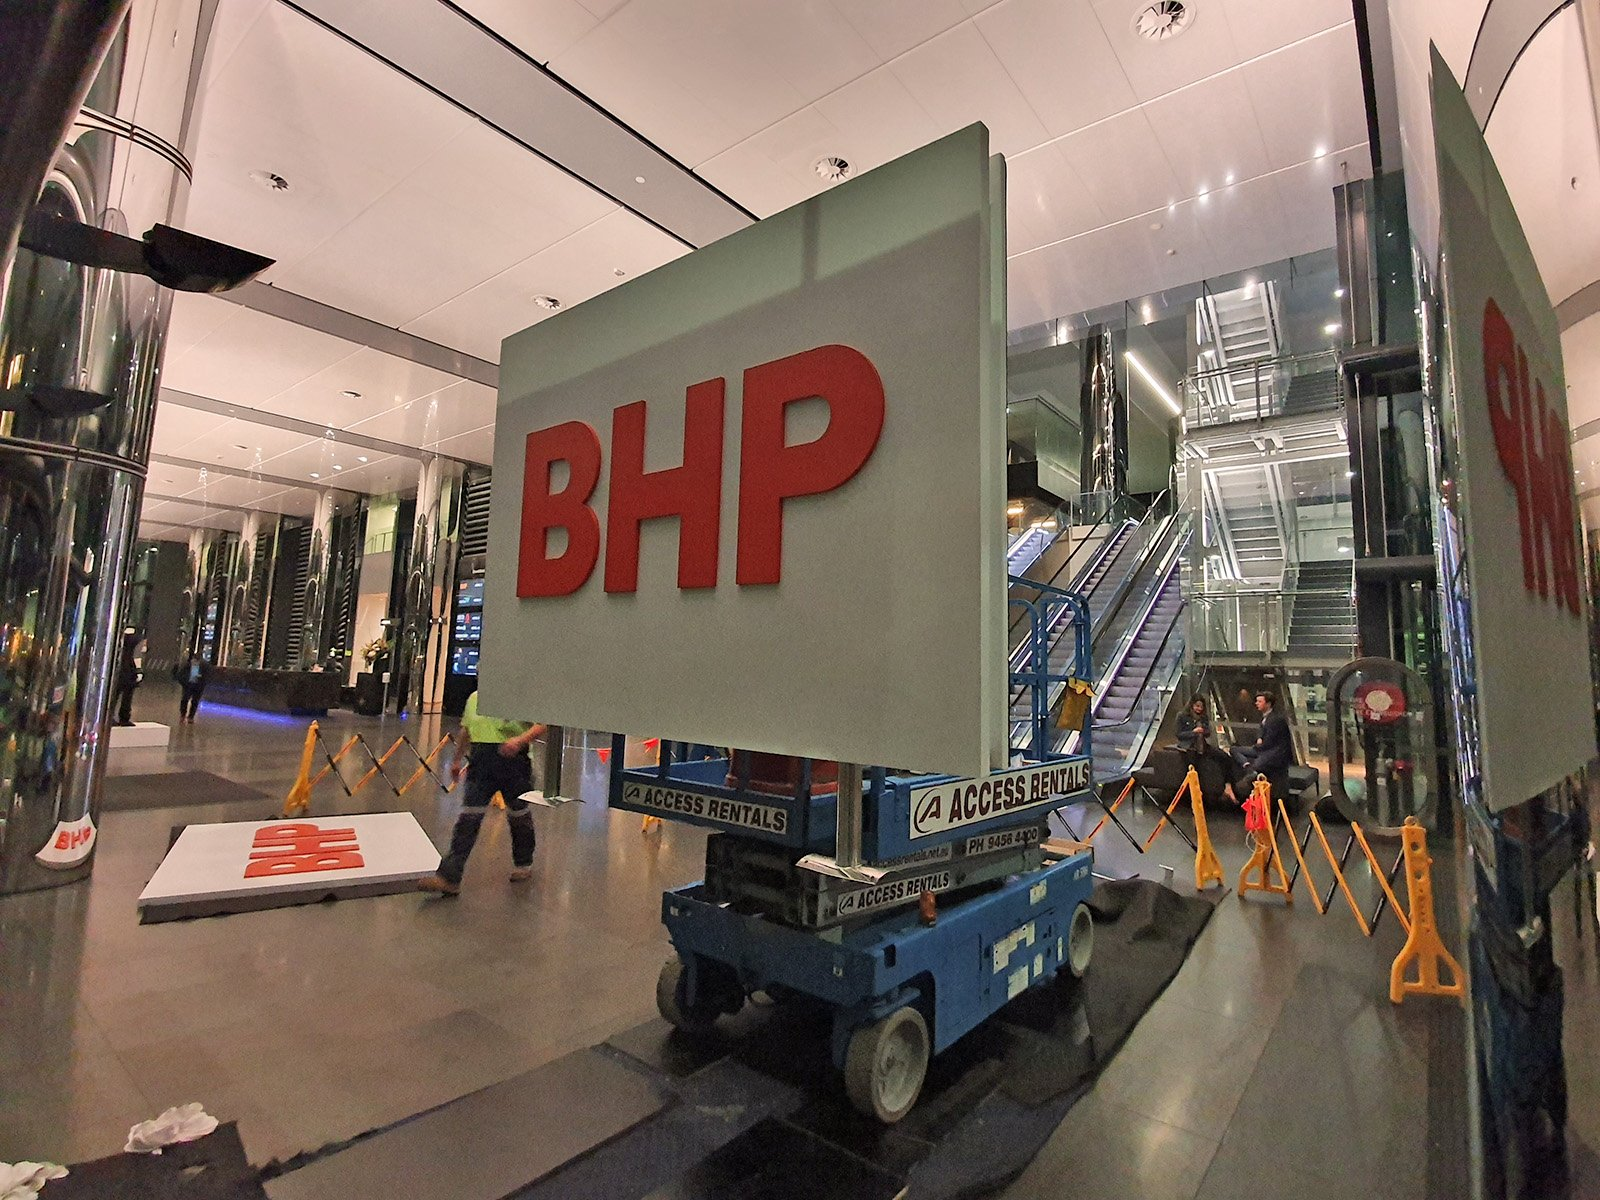 BHP re-branding double sided illuminated LED sign on the scissor lift